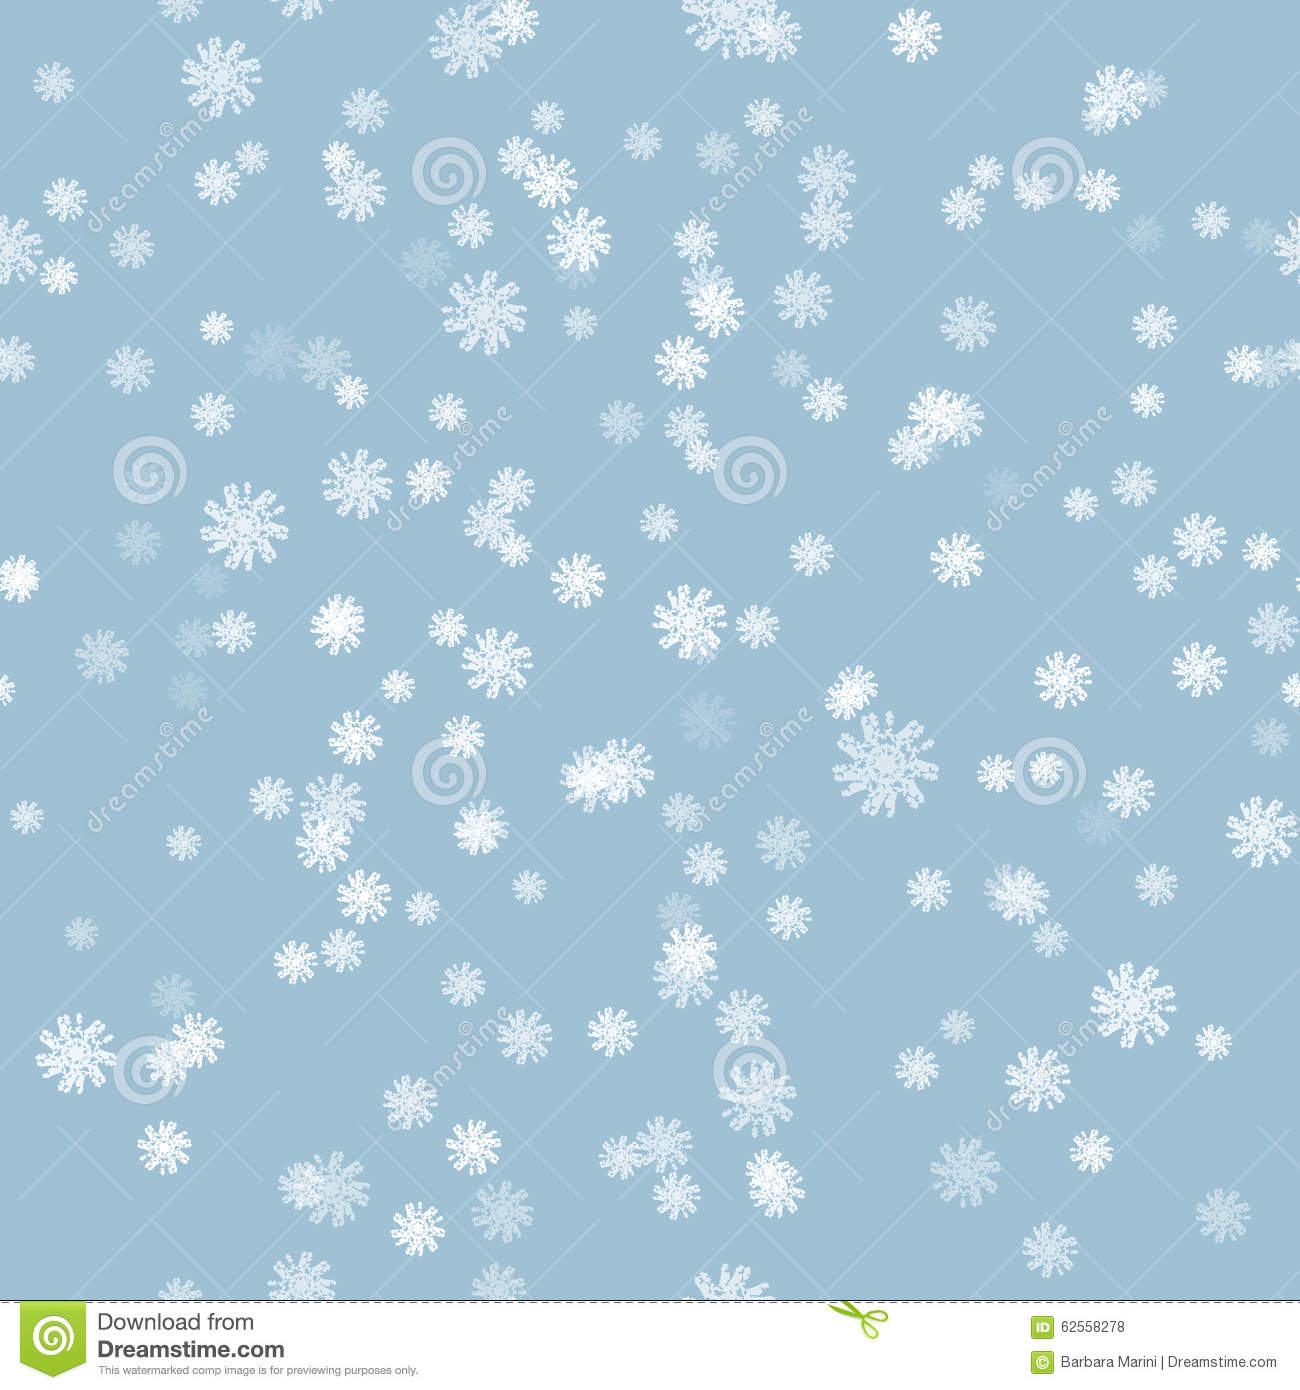 Free Falling Snow Wallpaper Winter Snow Brush Seamless Pattern Stock Vector Image